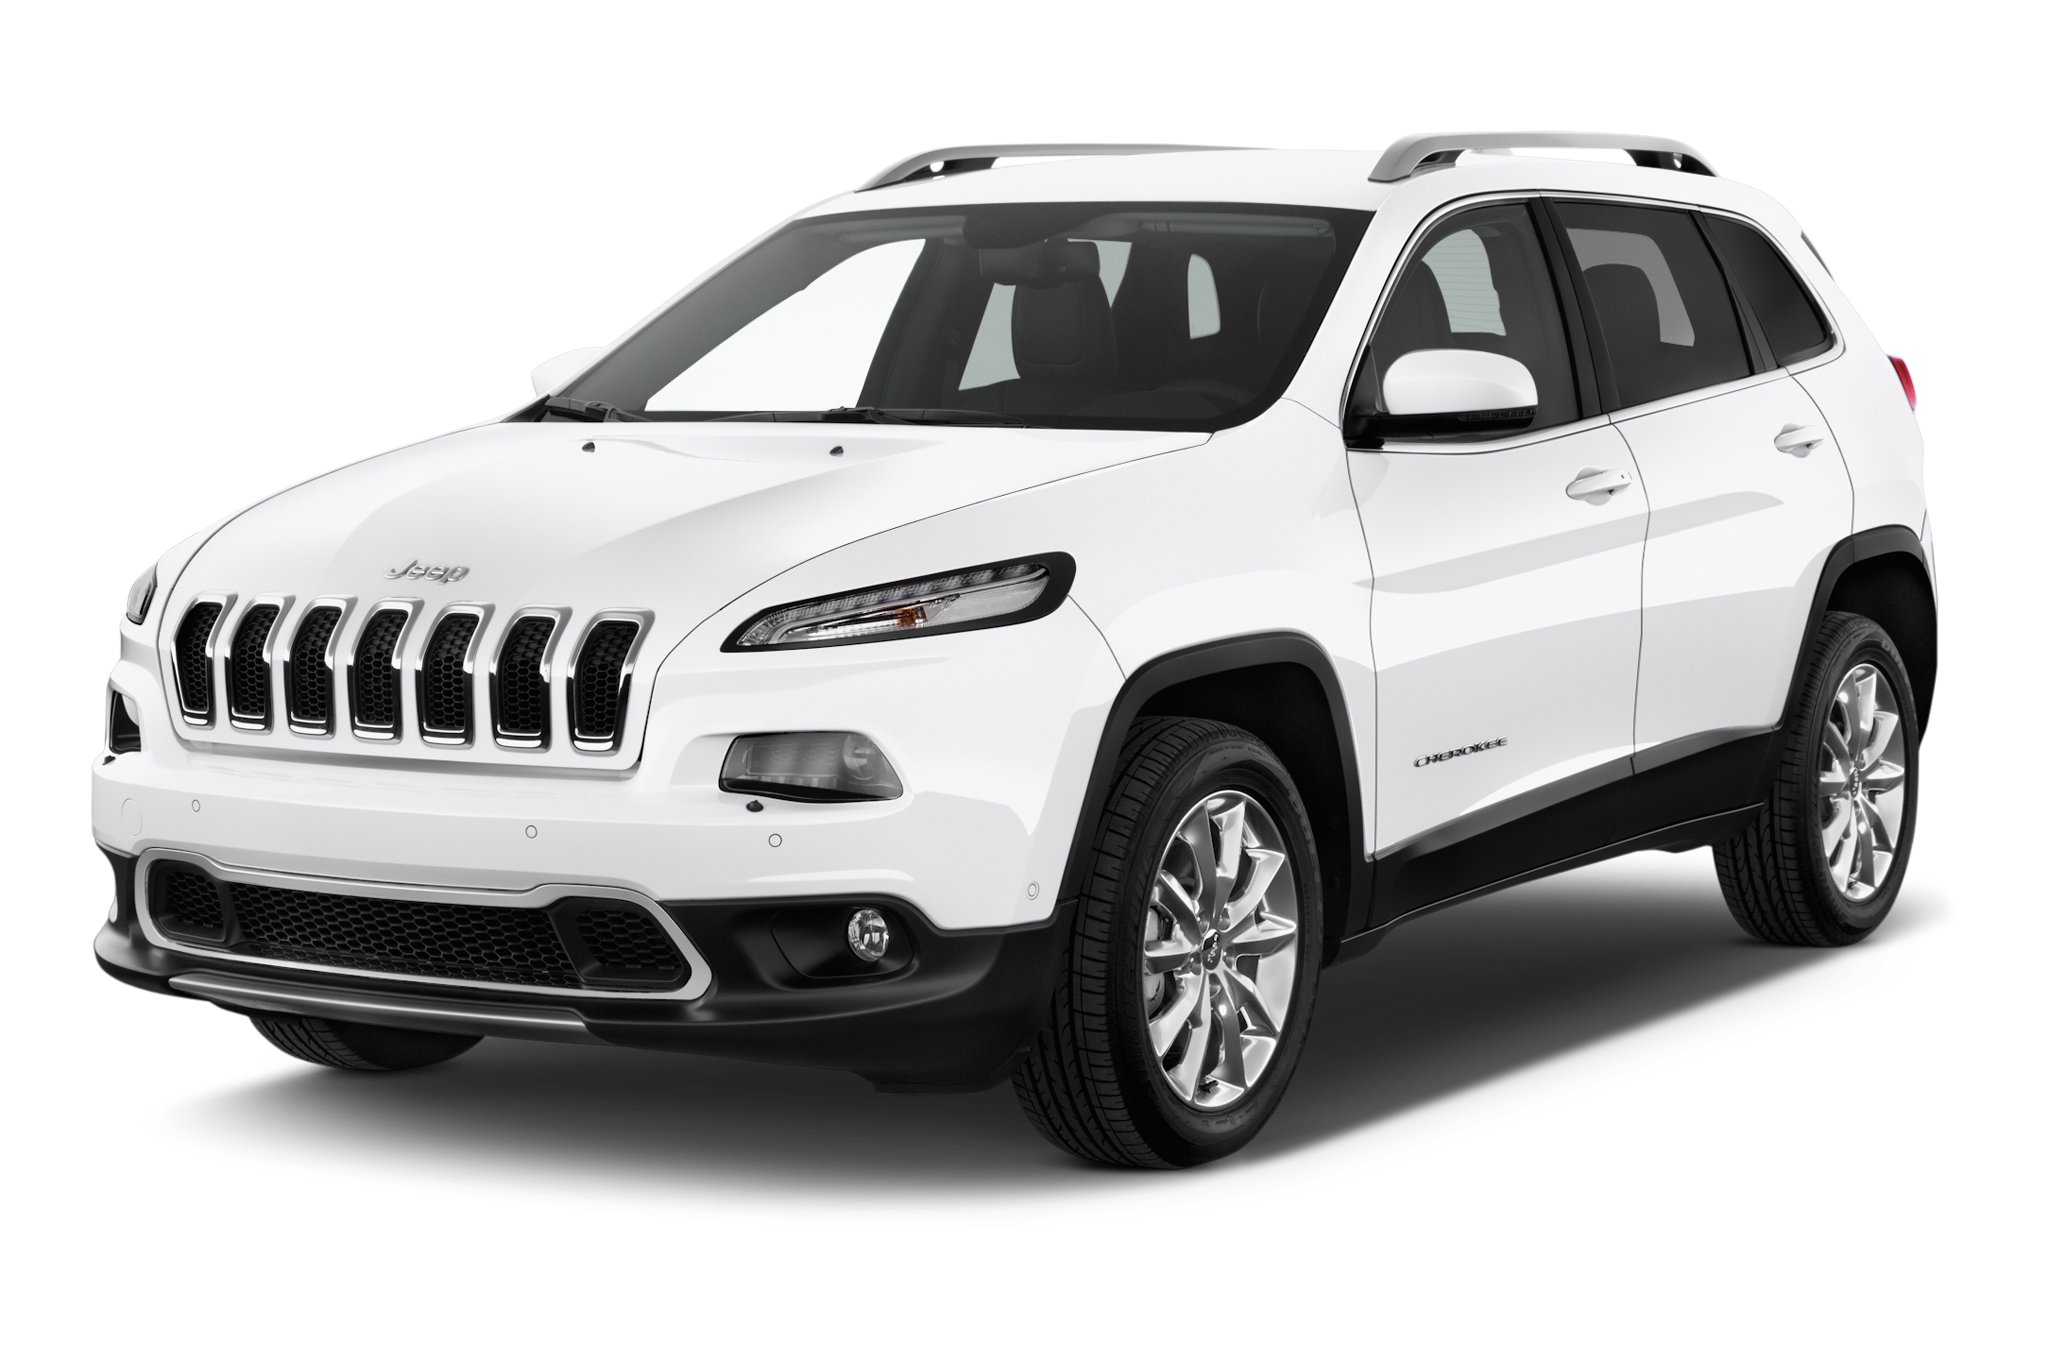 2015 jeep cherokee reviews and rating motortrendJeep Cherokee Hood Latch Diagram Release Date Price And Specs #1